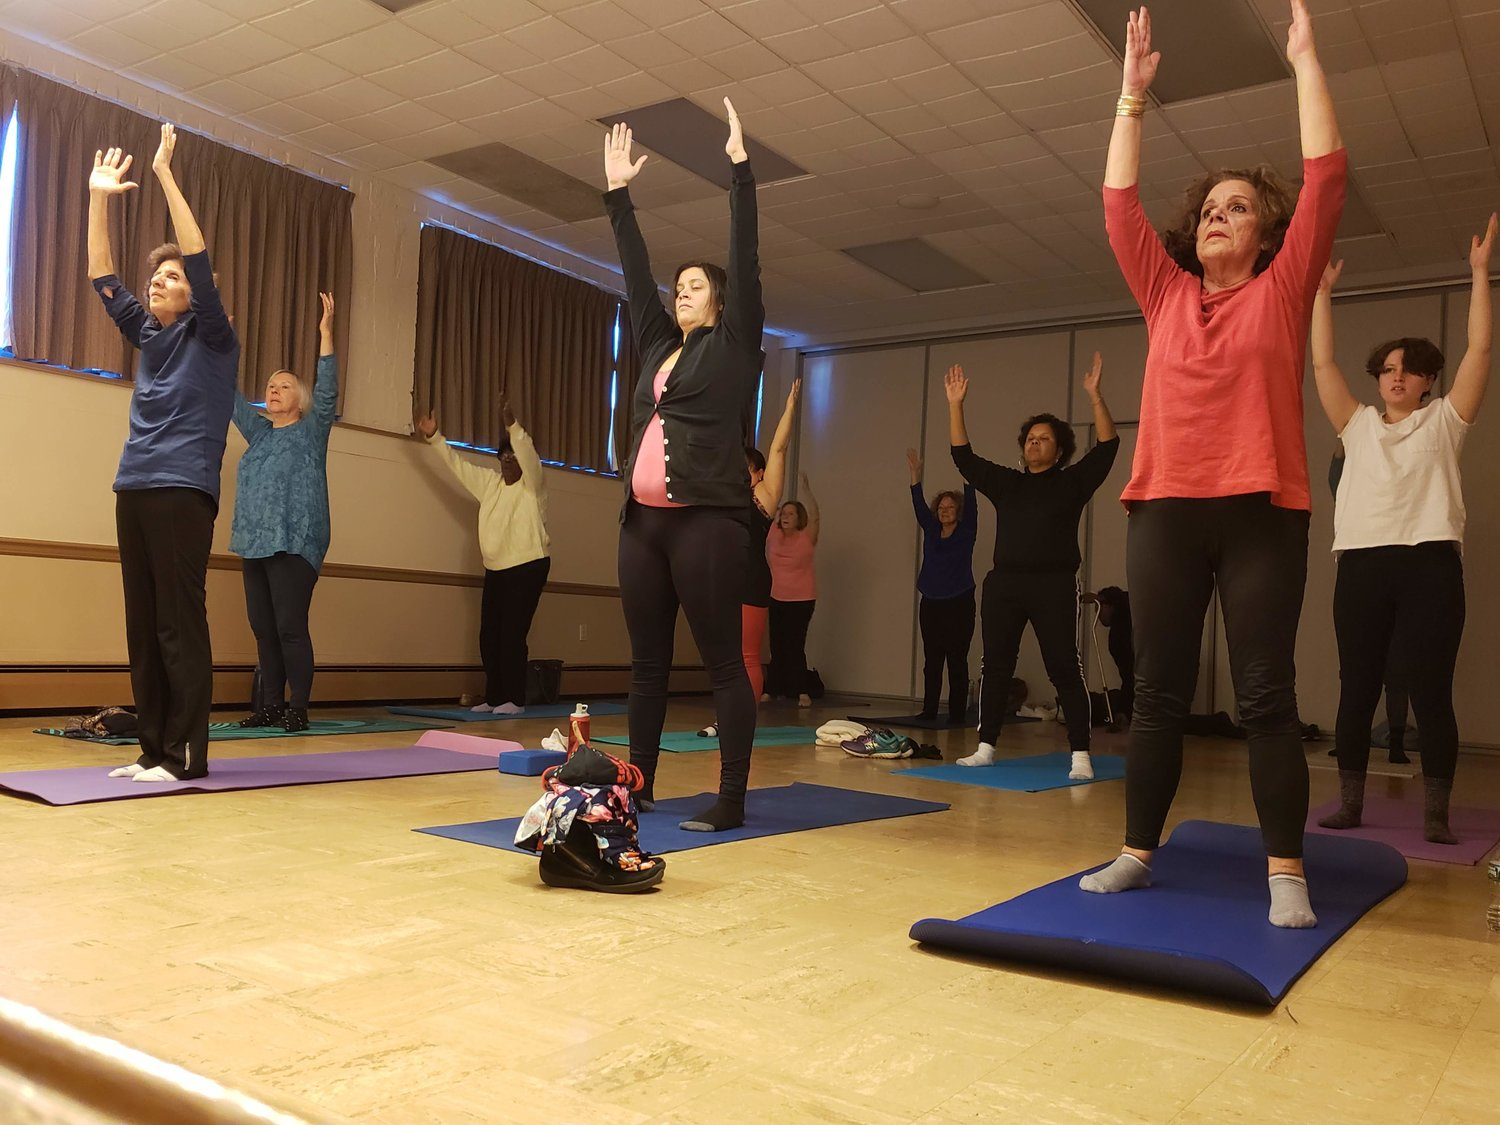 Baldwinite Helaine Savoca, Freeporter Laura Balalaos, and Lido Beach resident Marilyn Penaeene stretched at the start of the yoga class held at the Freeport Memorial on Dec. 18.